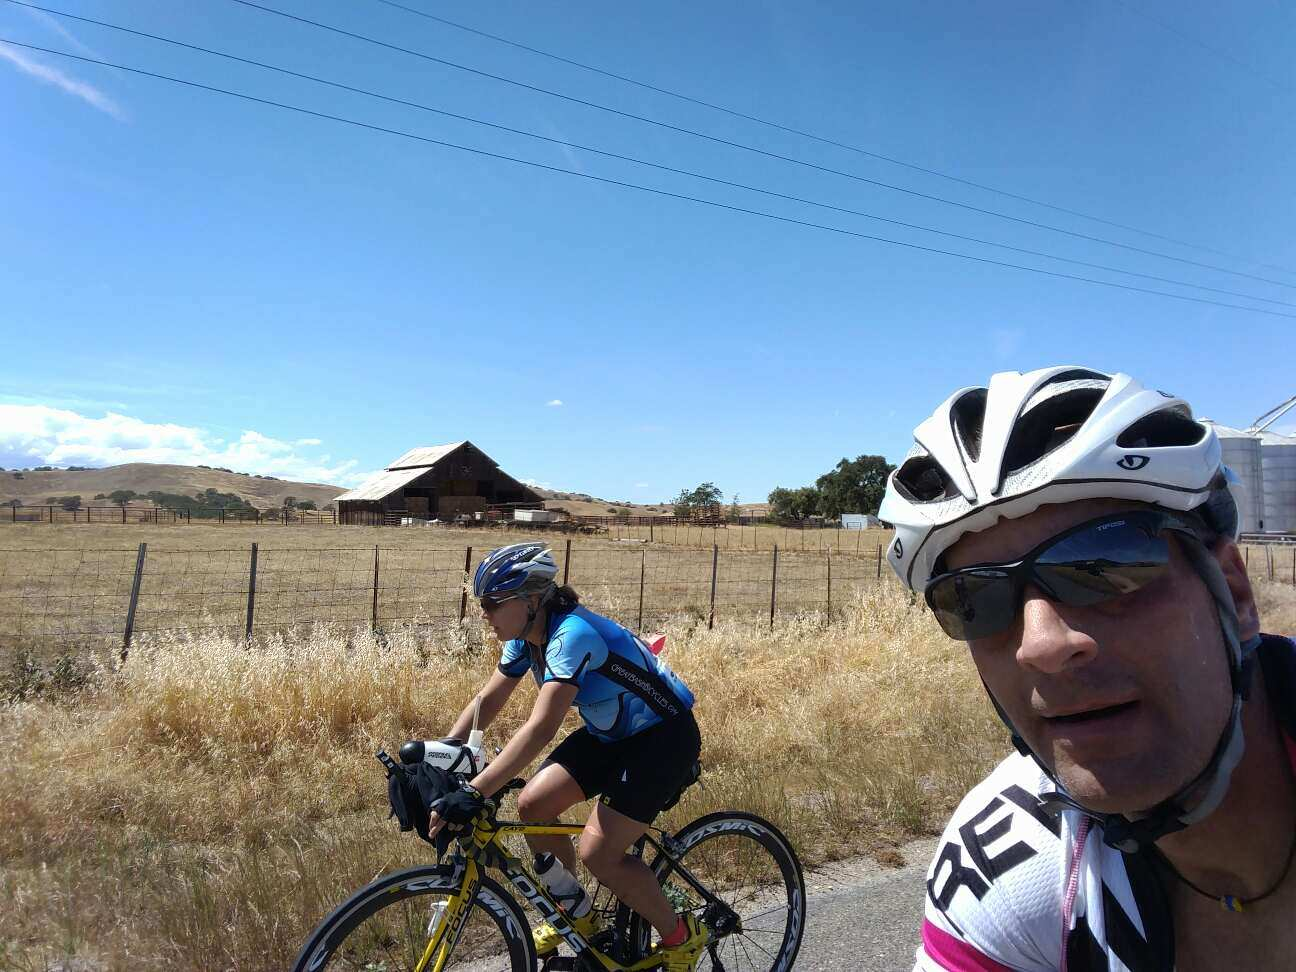 Lots of dry, hot miles and I am feeling horrible about making my teammates suffer.